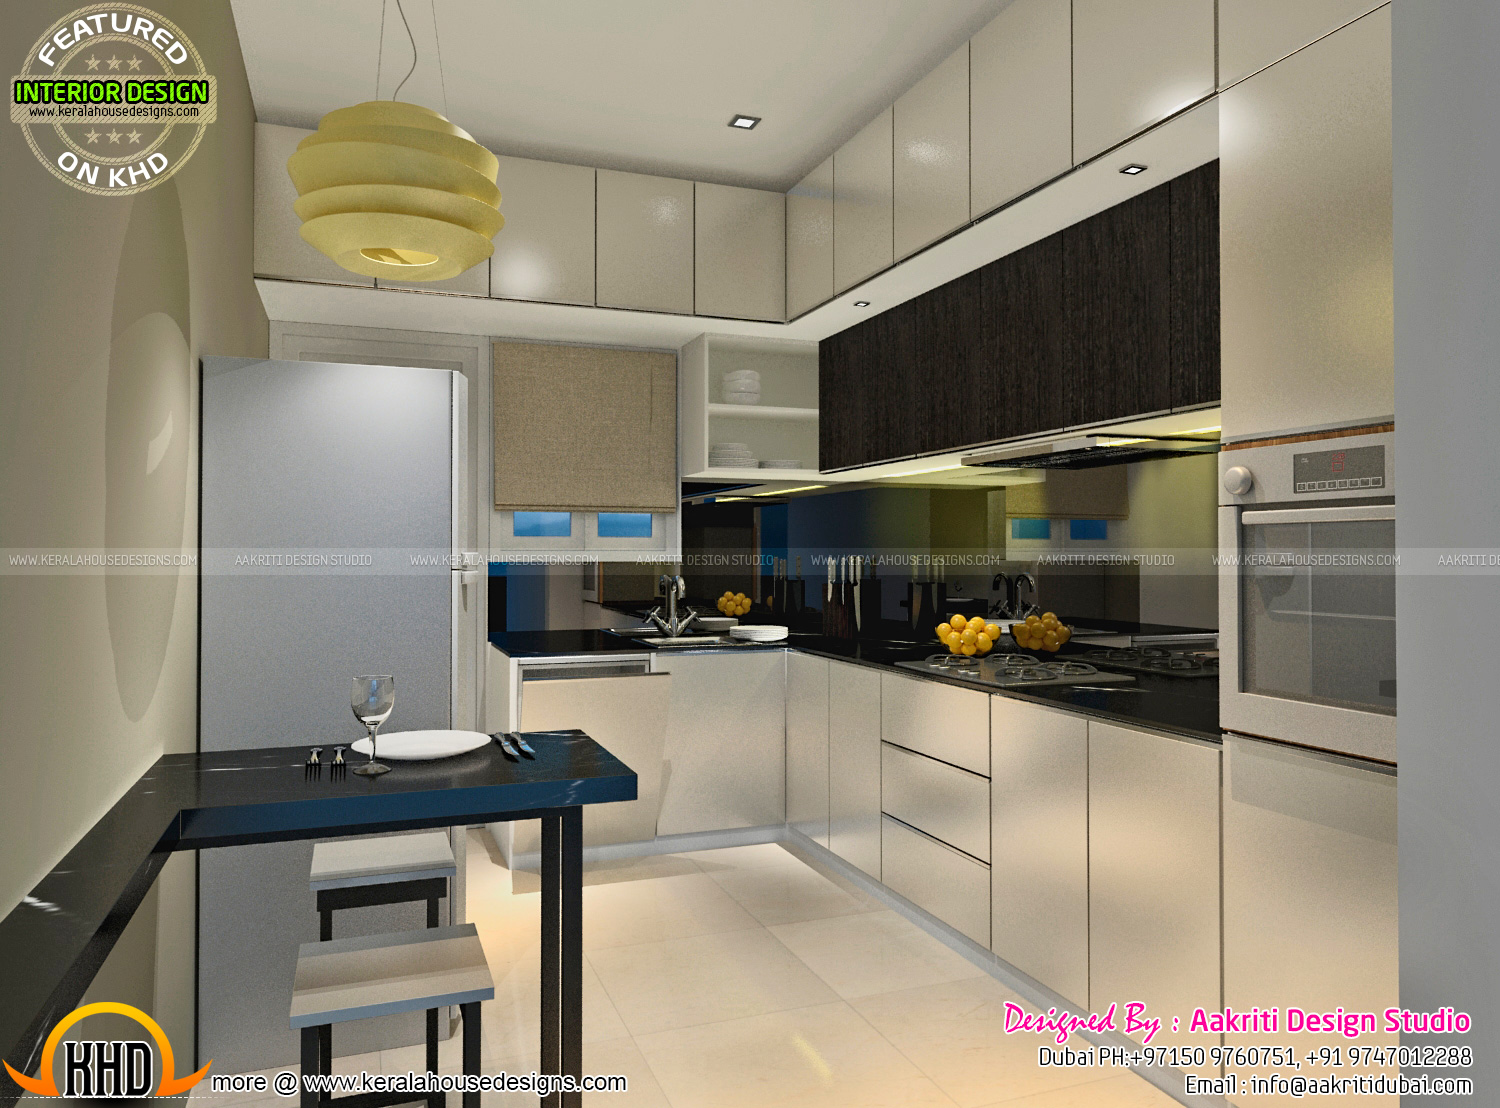 Dining kitchen wash area interior kerala home design for Home design images